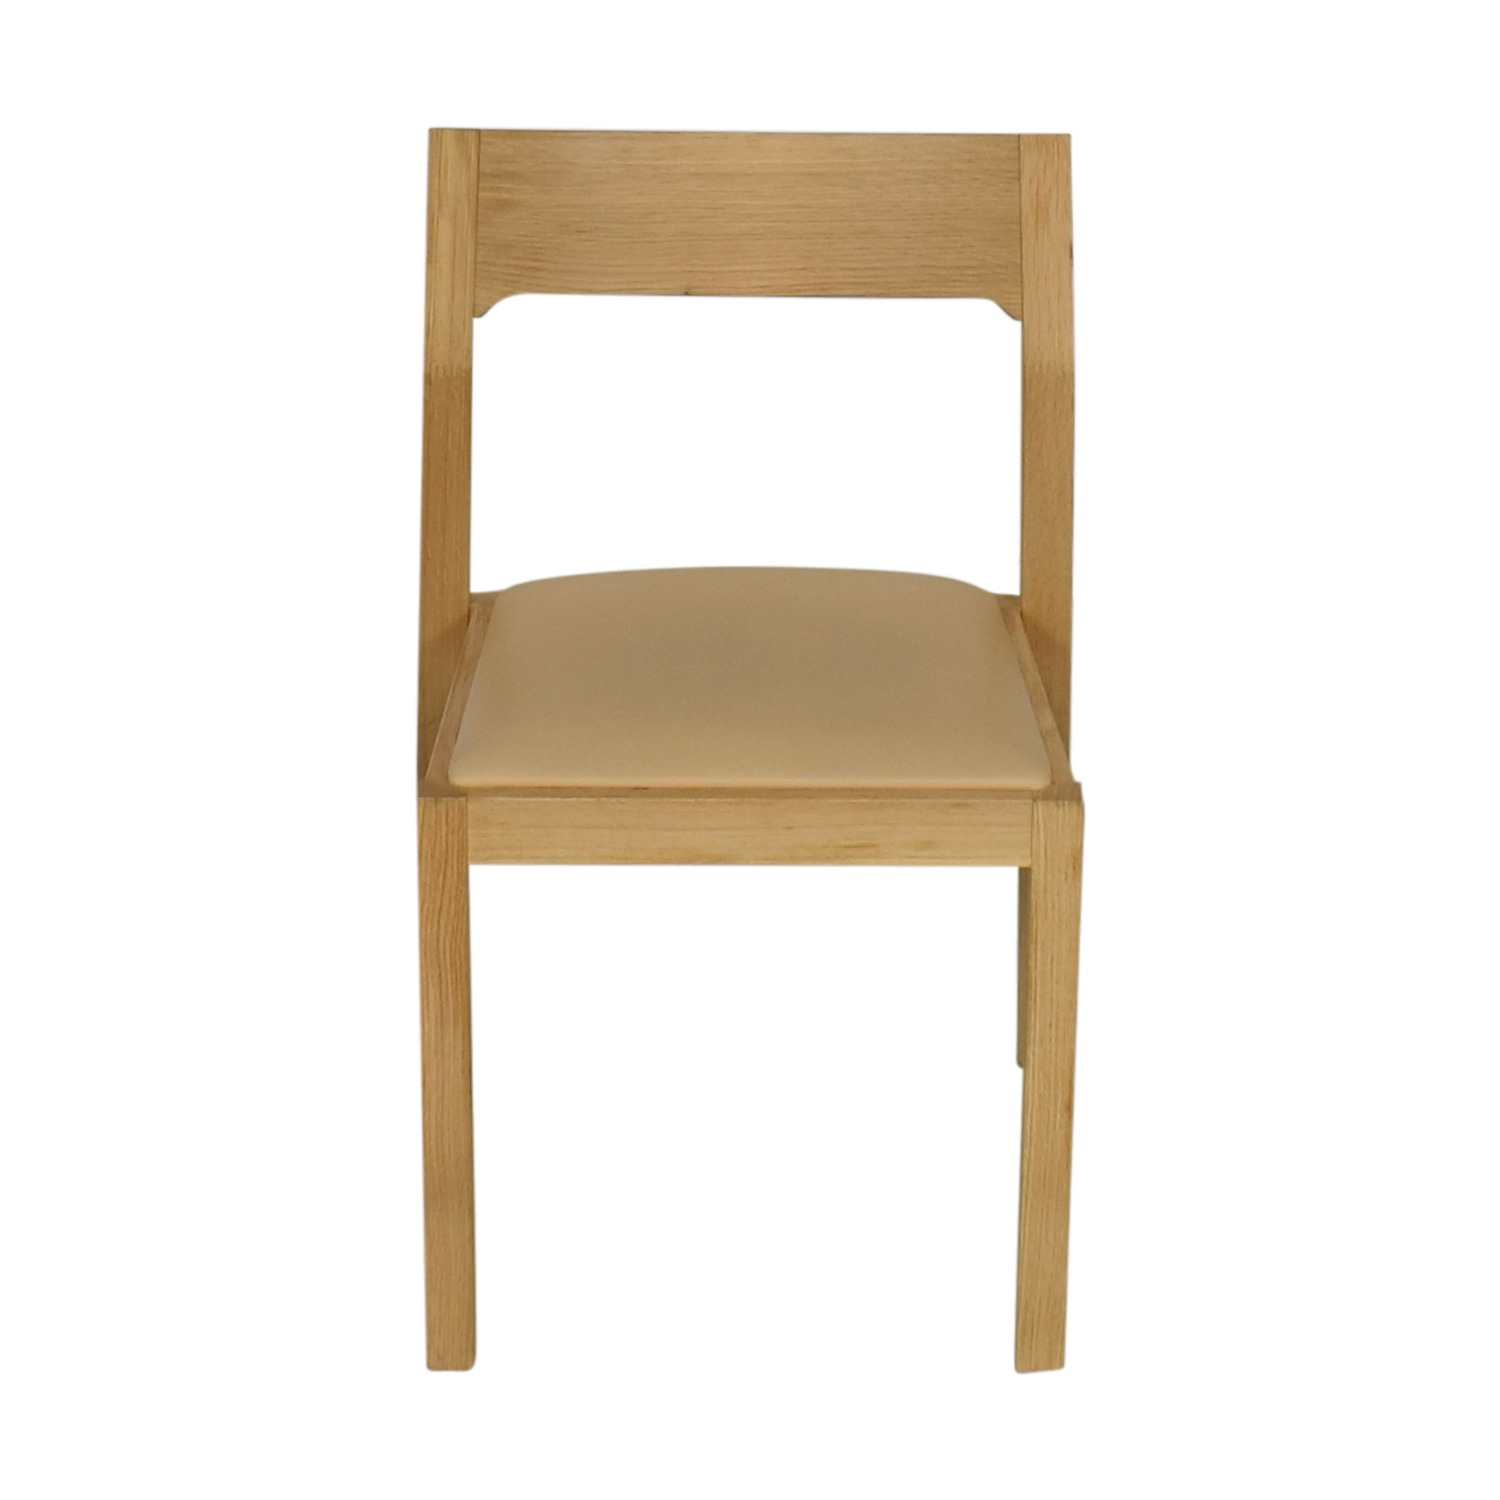 buy Profile Chair Designed by Matthew Hilton for Case Design Within Reach Chairs